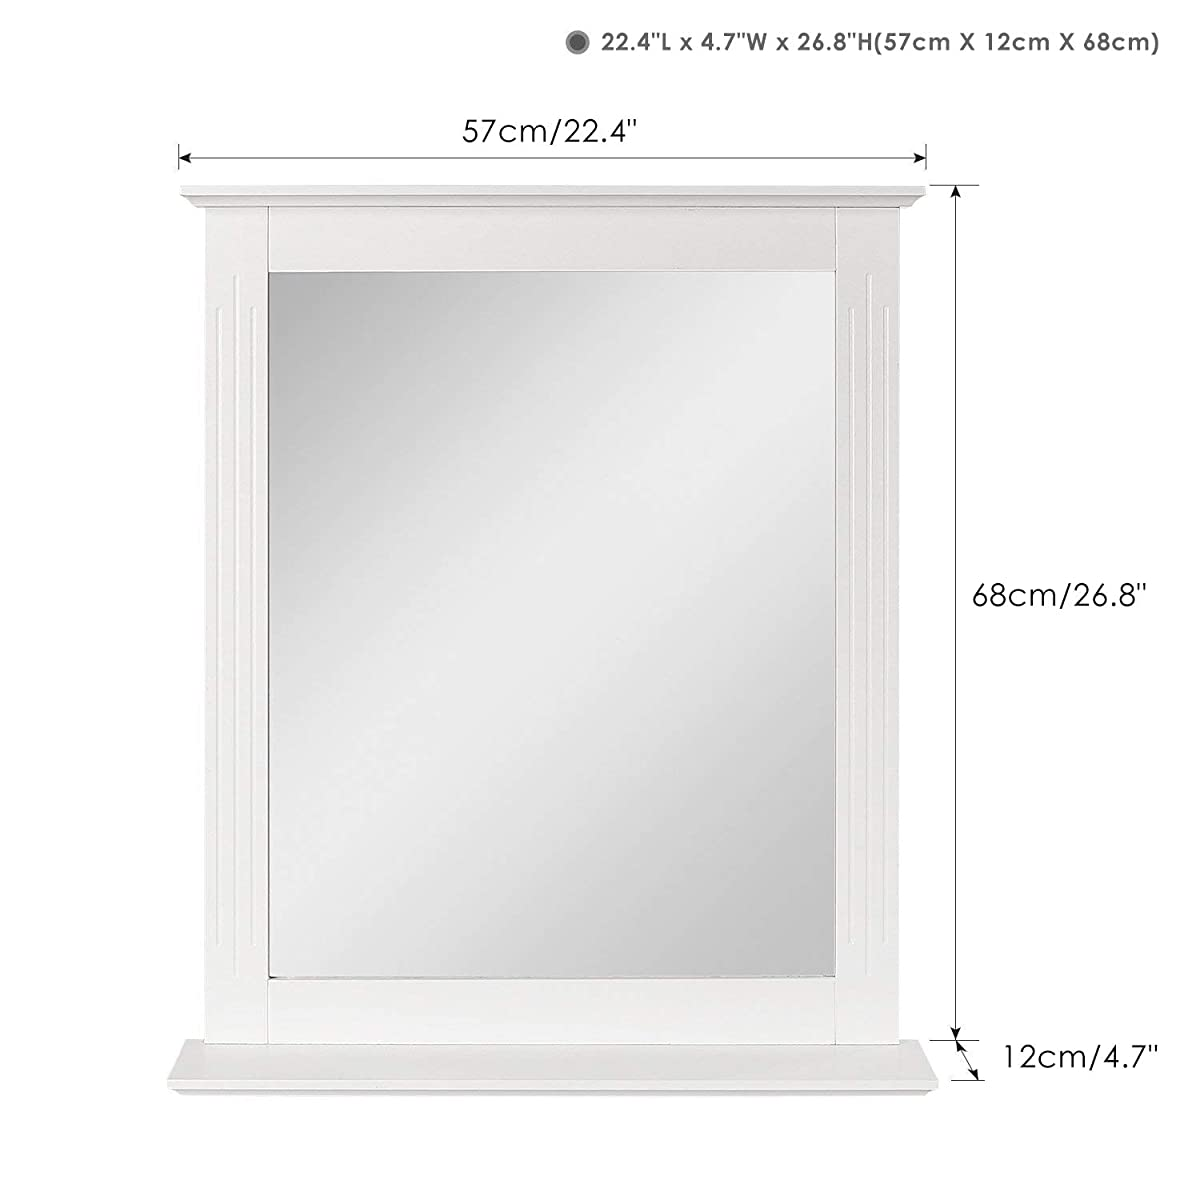 HOMFA Bathroom Wall Mirror Vanity Mirror Makeup Mirror Framed Mirror with Shelf for Home Multipurpose White